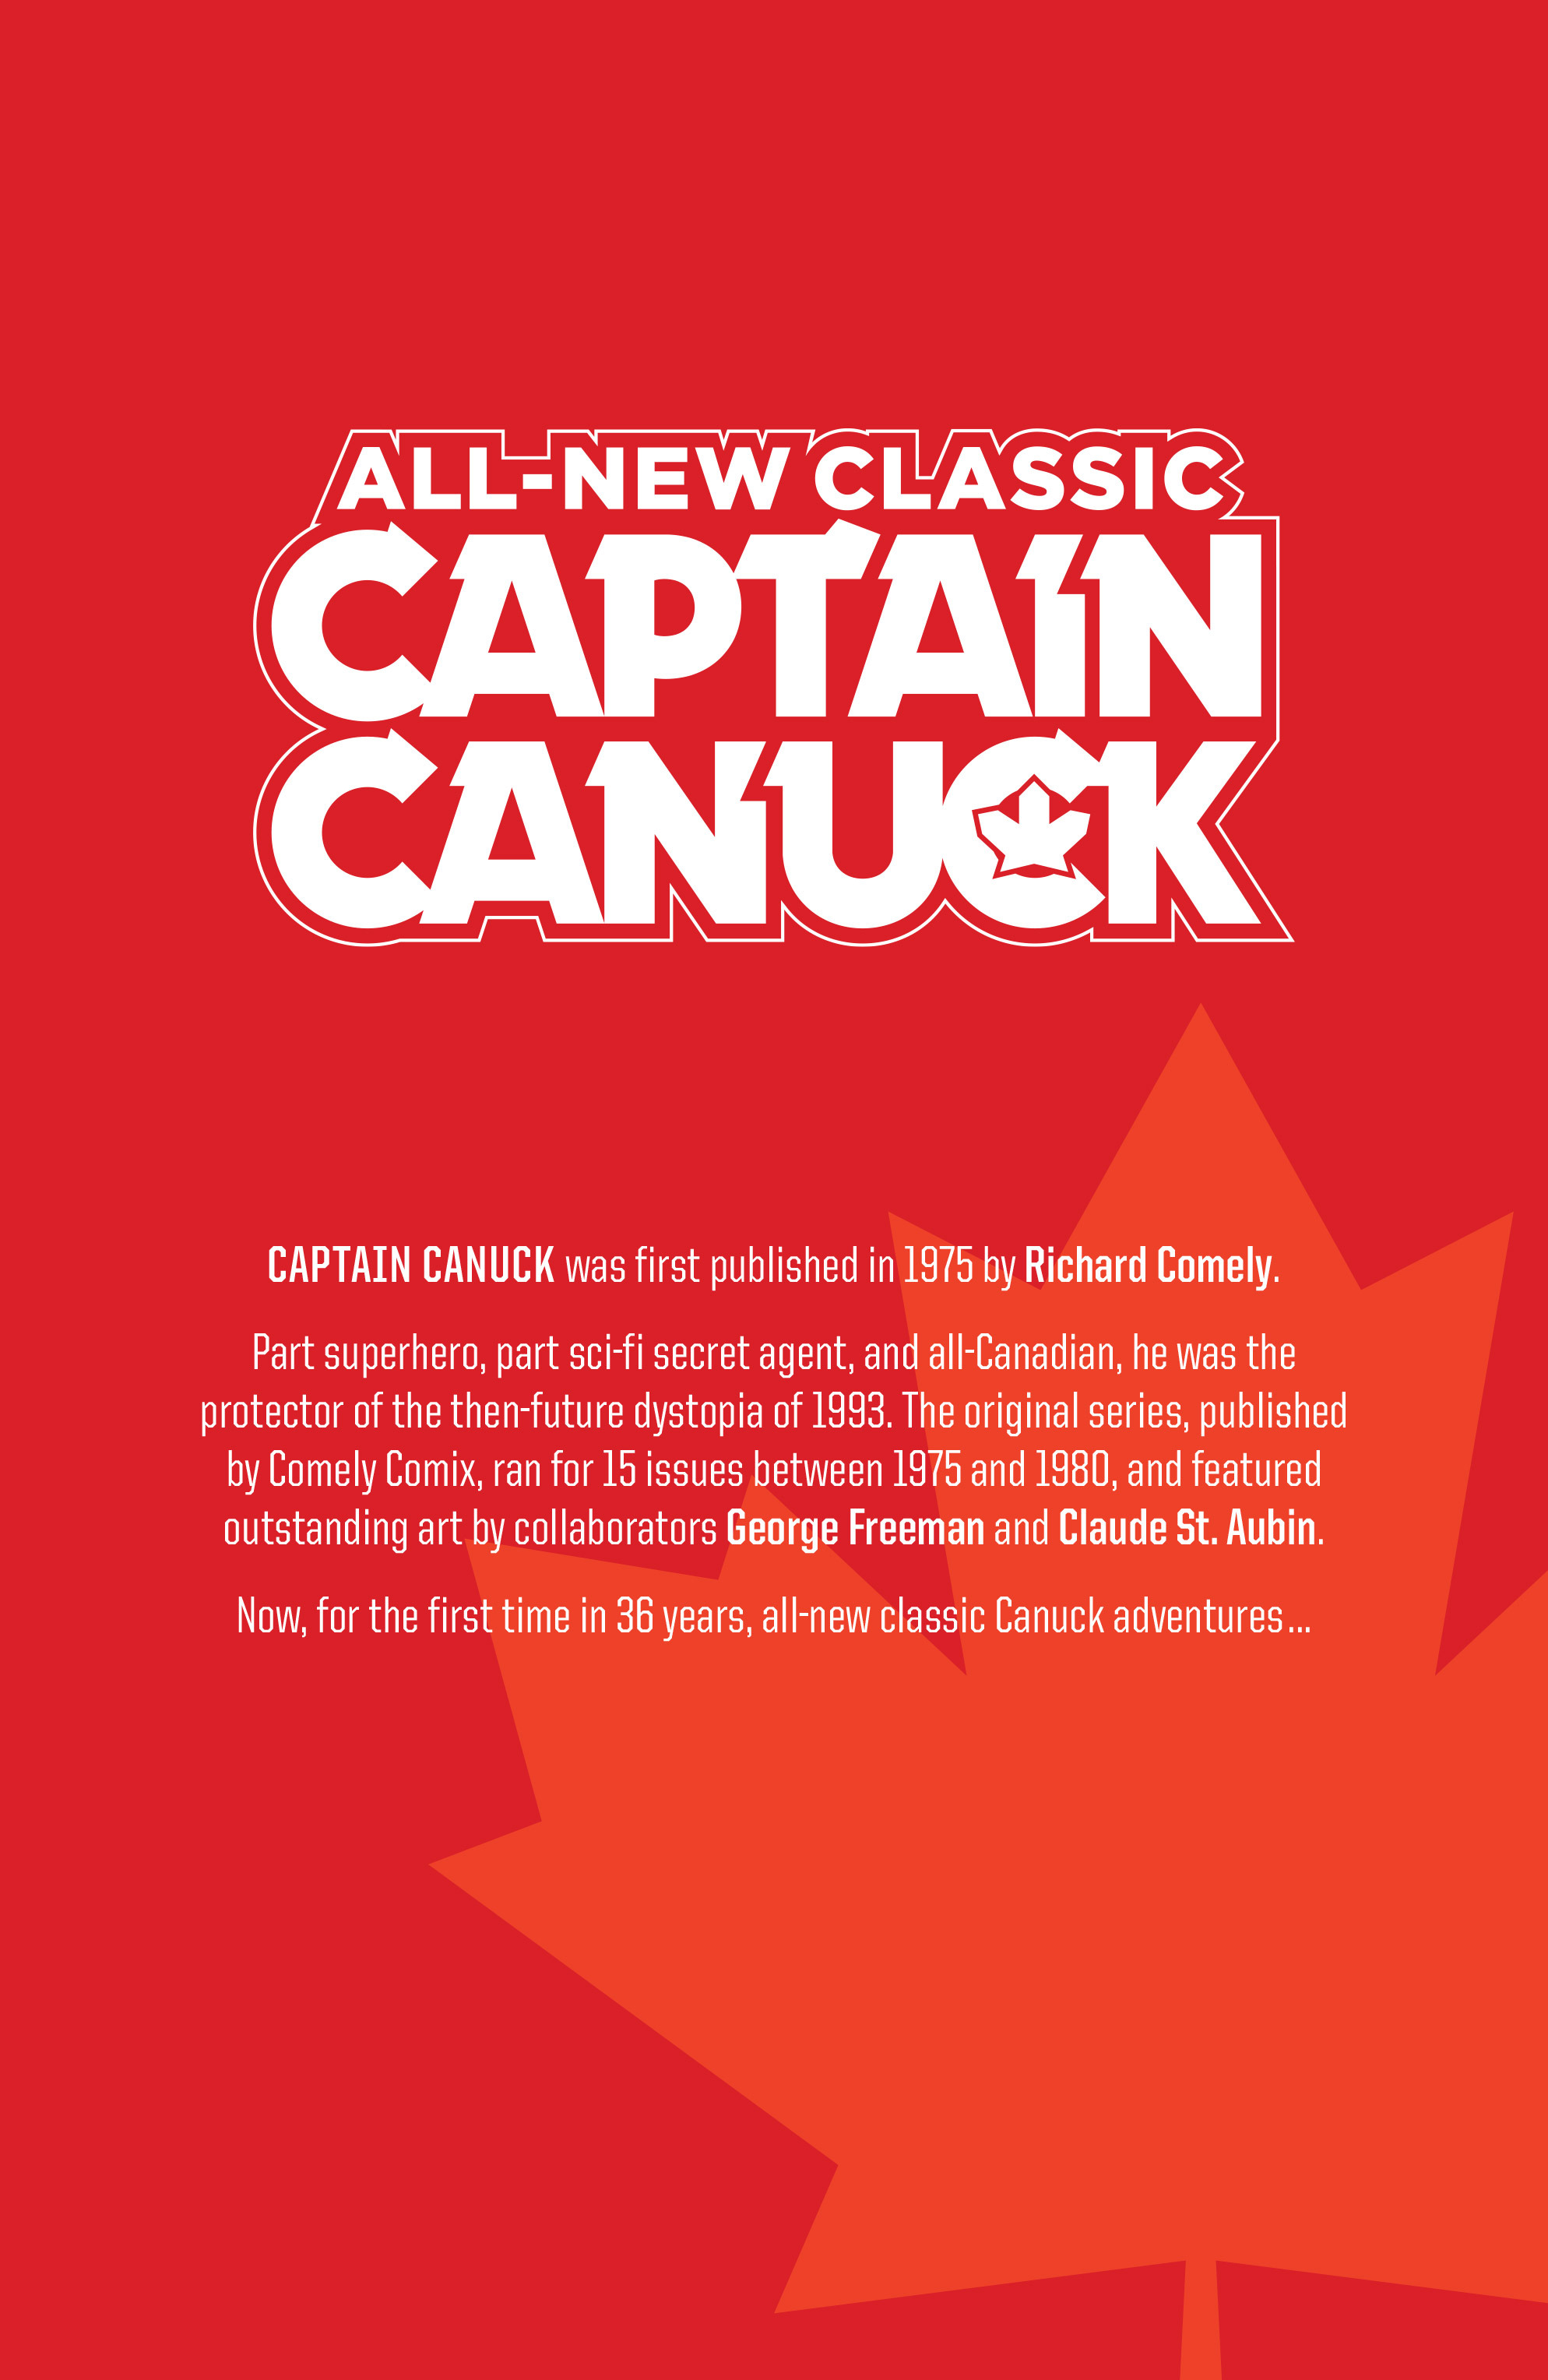 Read online All-New Classic Captain Canuck comic -  Issue #0 - 2